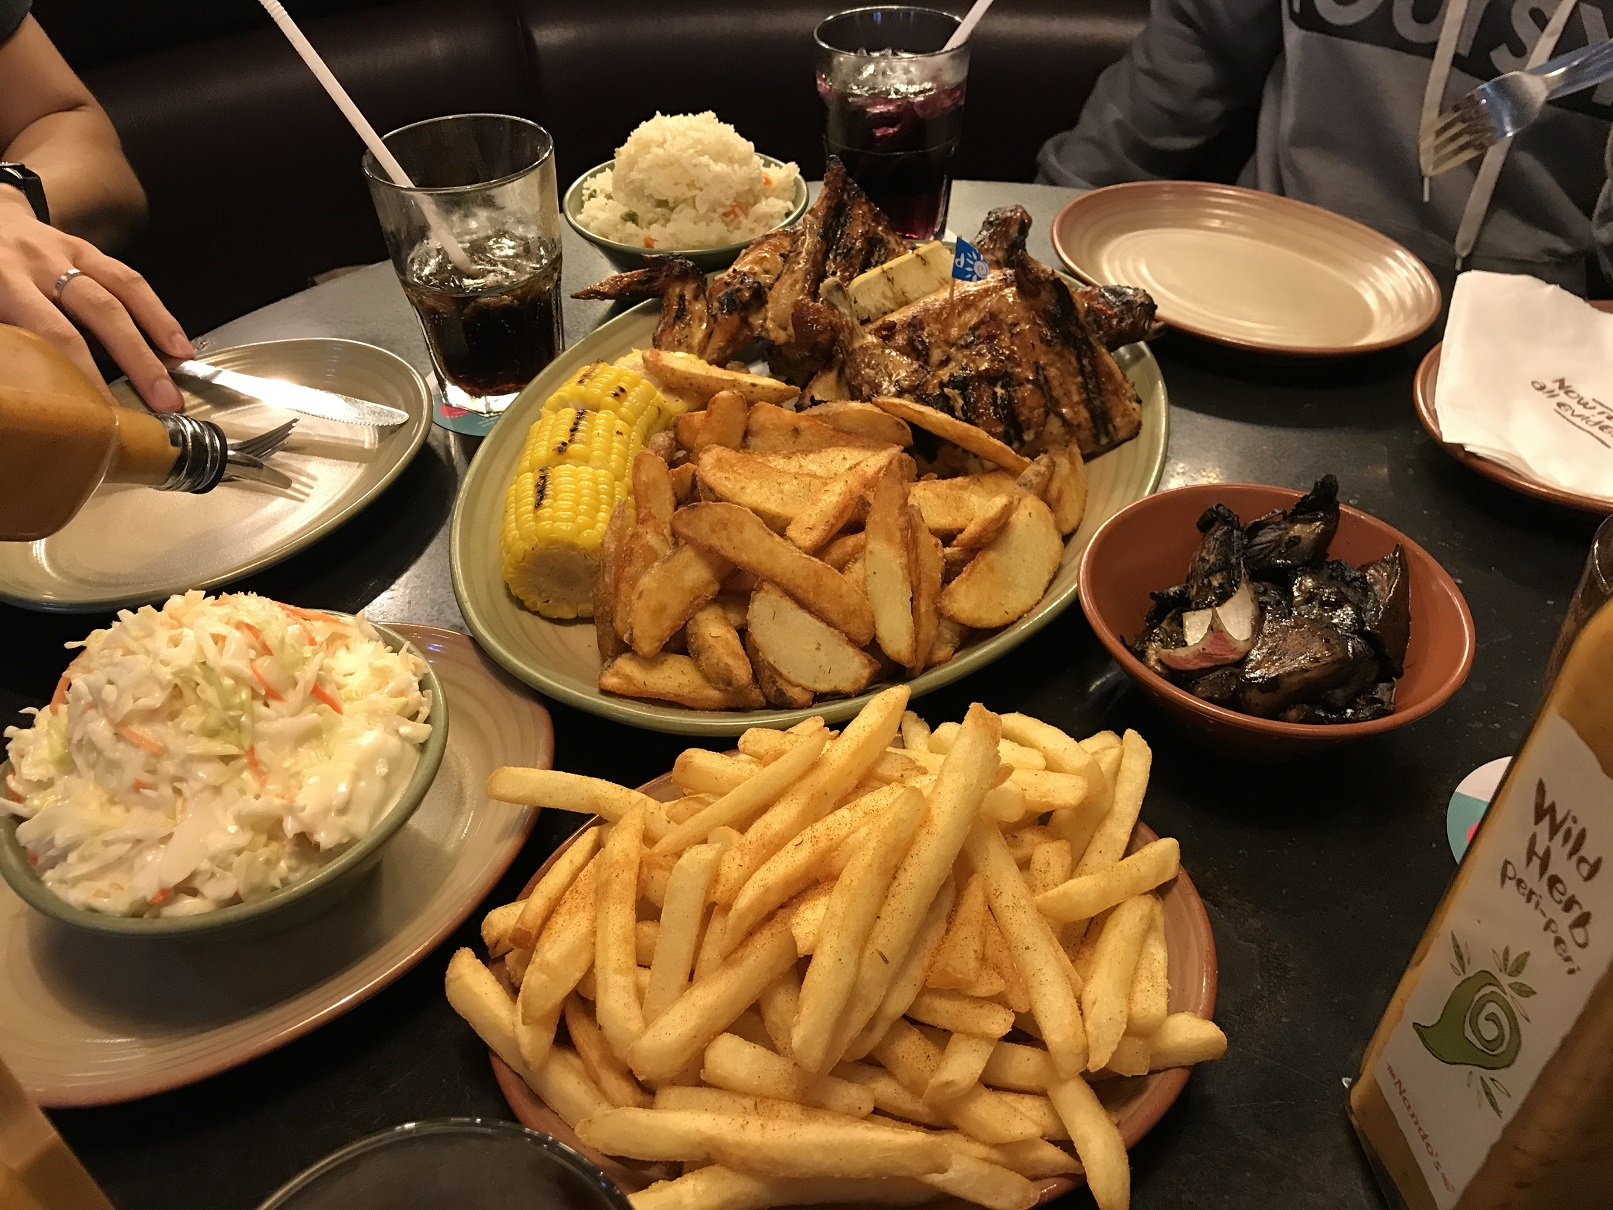 Nandos potato overload!